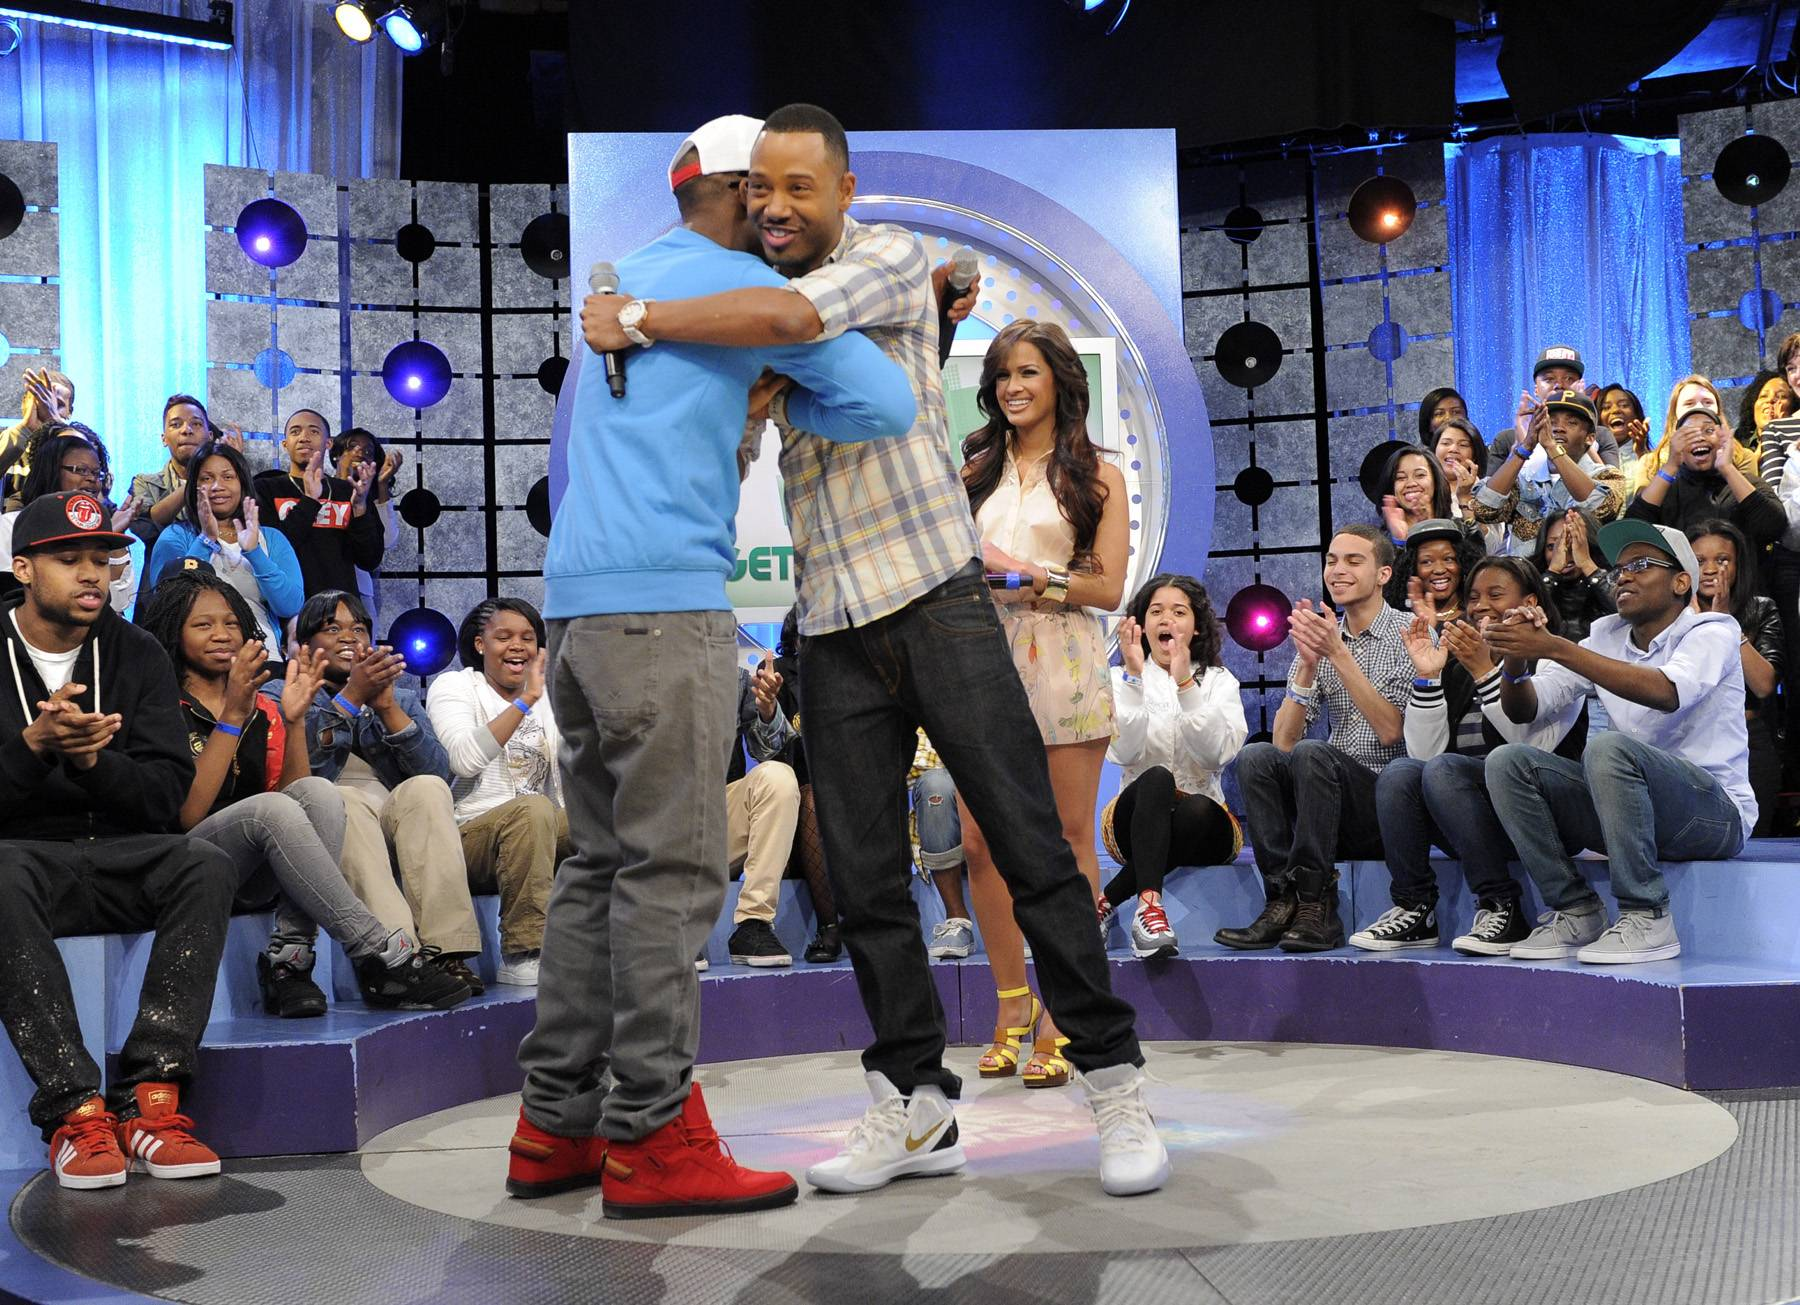 One Love - B.o.B takes the stage at 106 & Park, May 1, 2012. (Photo: John Ricard / BET)